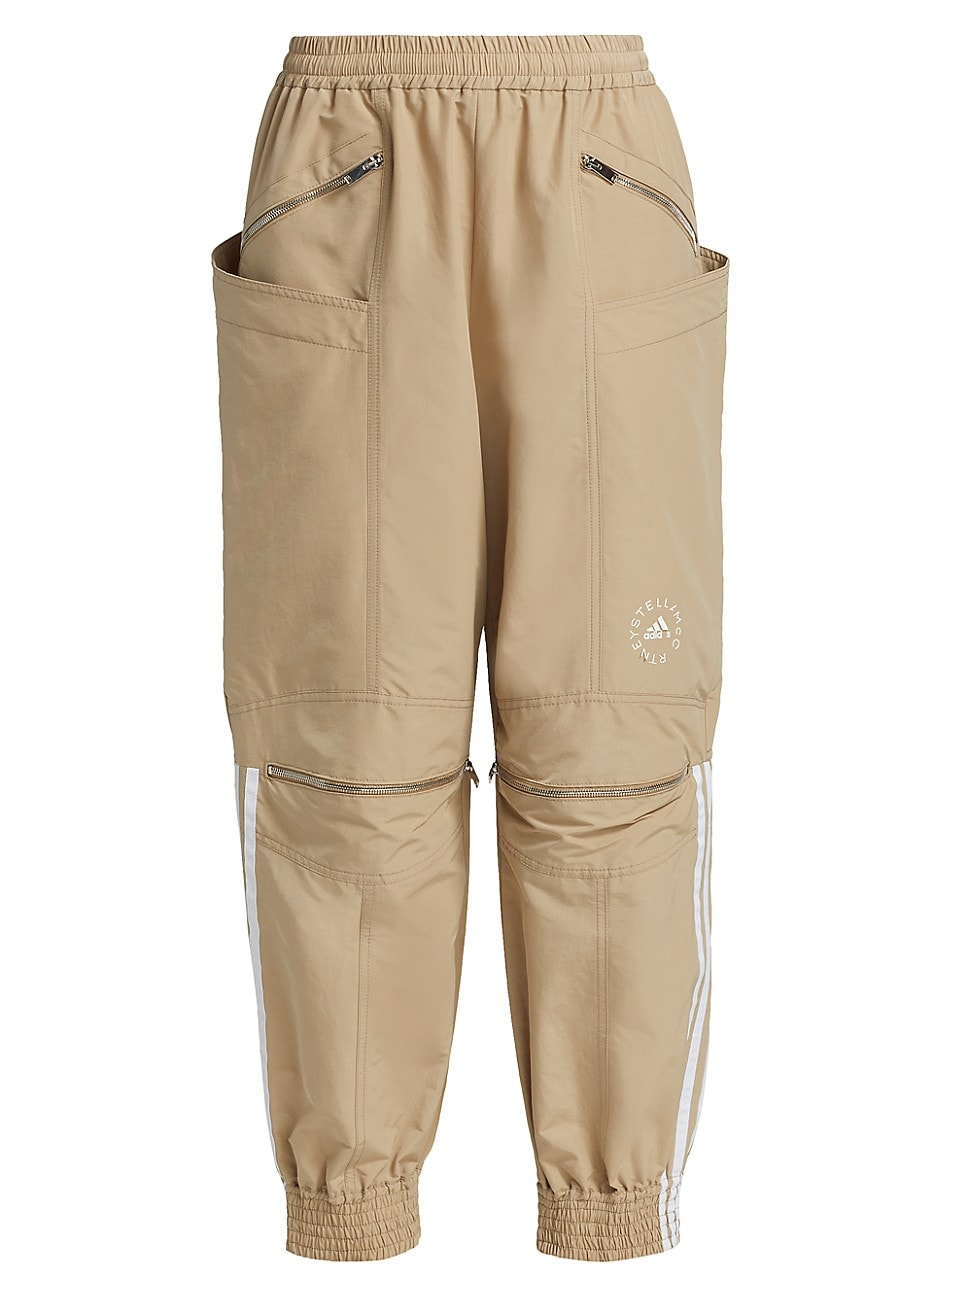 Stella Mccartney Cottons JUNE KHAKI ZIP TROUSERS